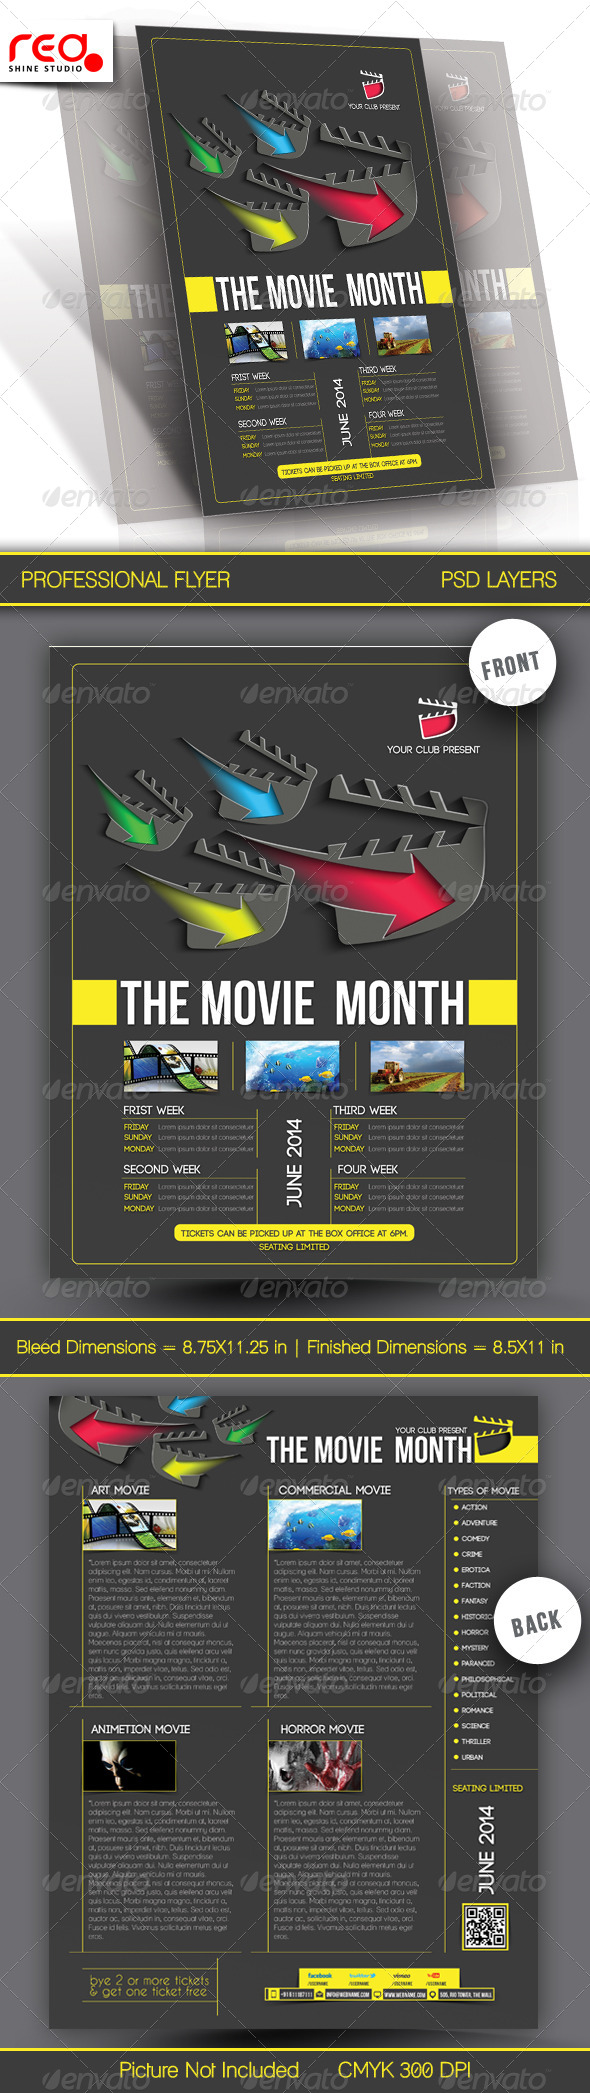 GraphicRiver The Movie Month Flyer Template 7089075